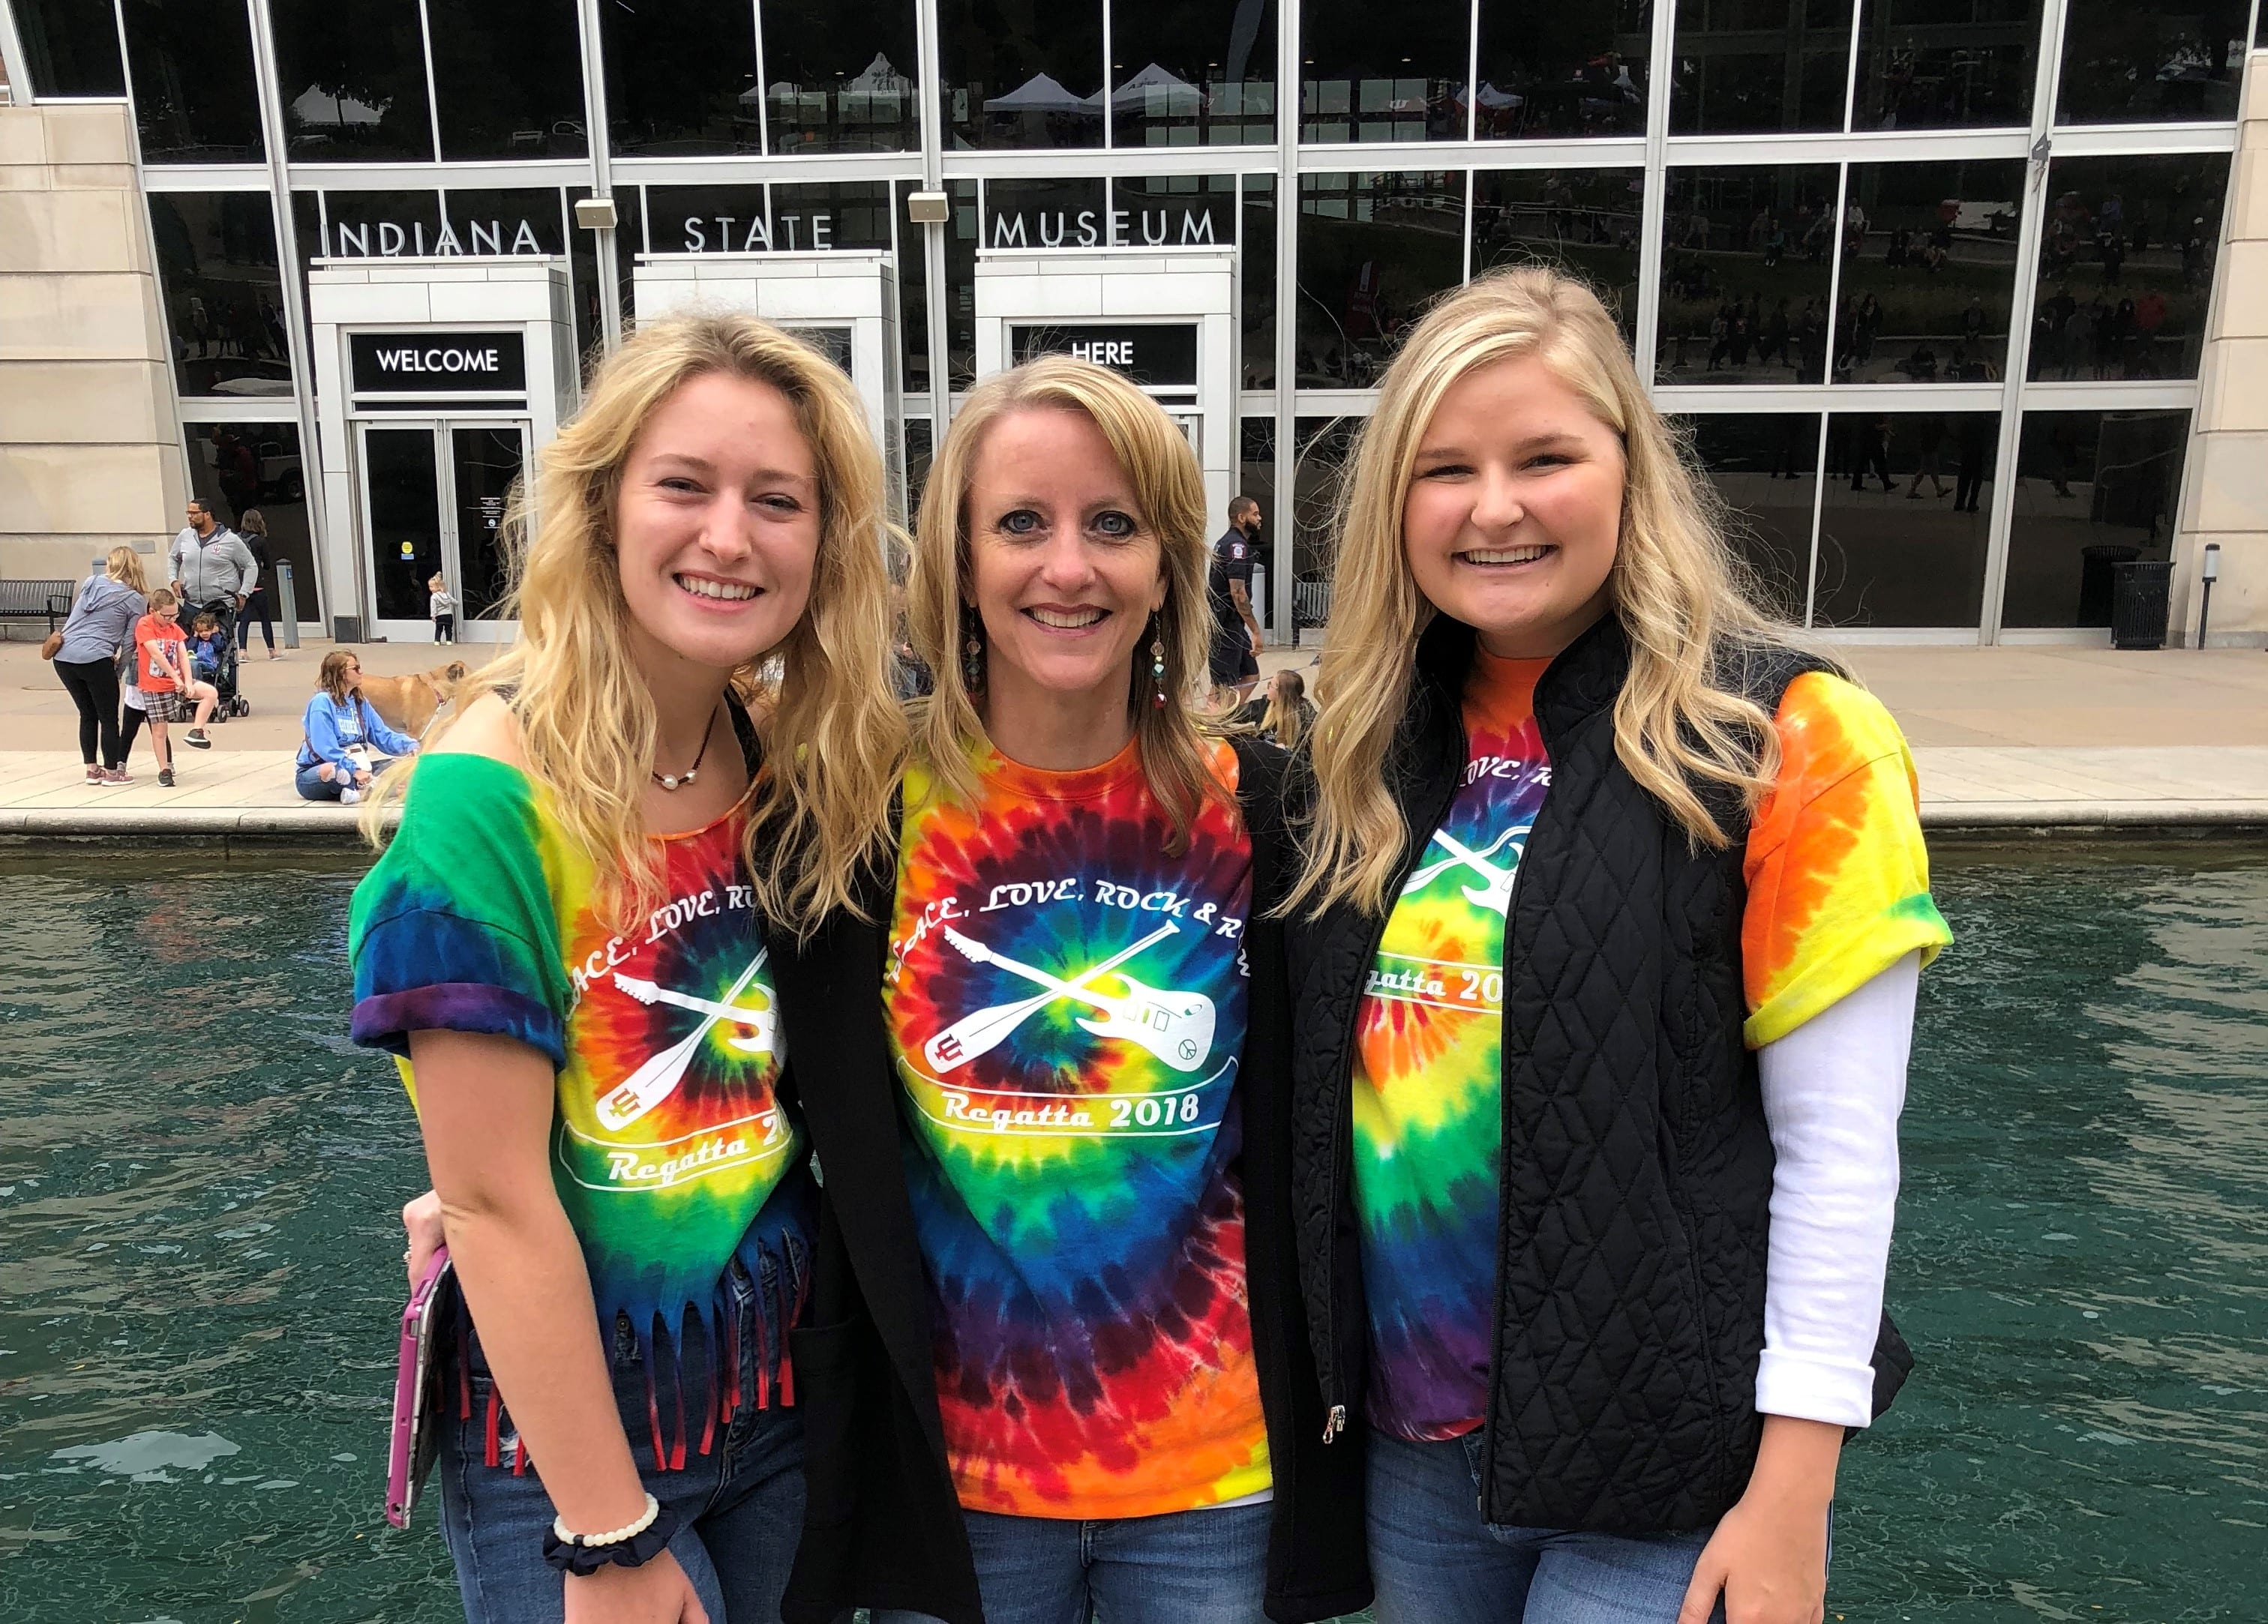 From l-r: Kellie Waring, Pamela Clark, and Justine Oppelt cheer on the Water Lillies team at the 10th Annual IUPUI Regatta